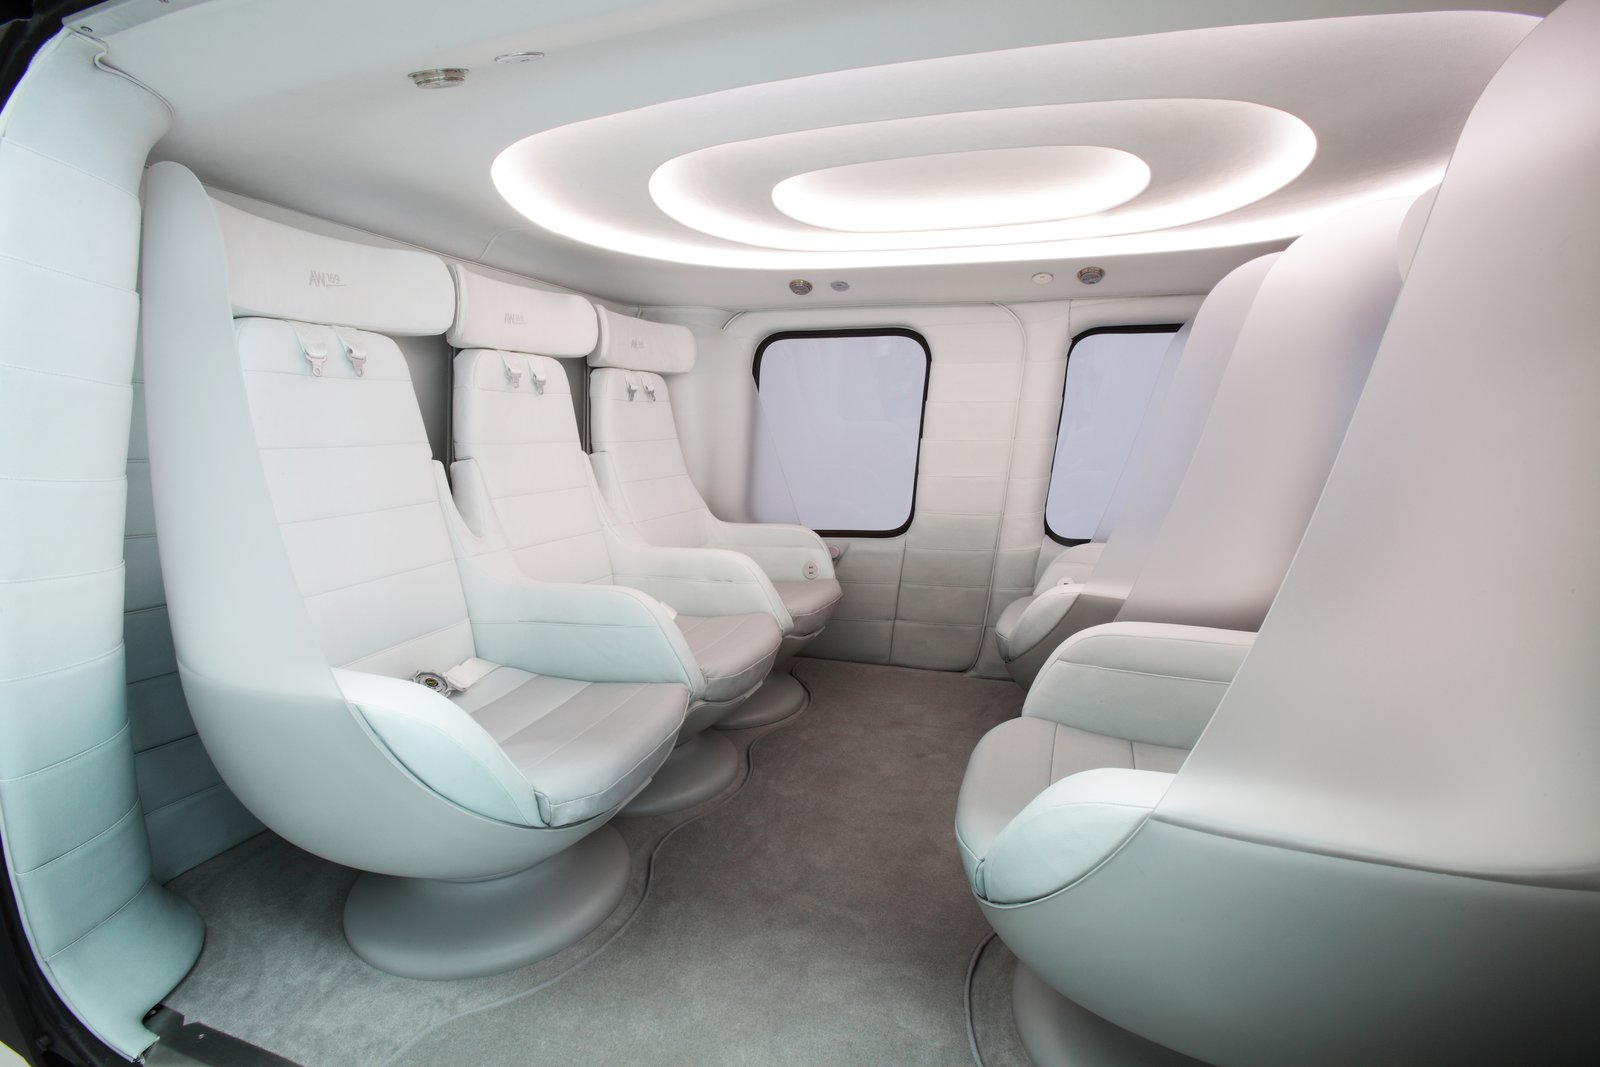 """This VIP interior for the AW169 helicopter can accommodate up to five passengers in cocoon-like leather seats. The cabin is done up in a neutral palette, placing emphasis on the passing scenery.  Search """"장흥출장마사지-출장안마-출장-출장서비스 장흥콜걸 출장샵 주소ㅋr톡BC388 주소[sannhu222,vip] 장흥 출장여대생 만남 출장만남 업소 타이마사지 출장샵추천 업소  장흥출장샵 출장서비스 출장업소"""" from The Ultimate Ride: VIP Helicopter with Plush Interior"""